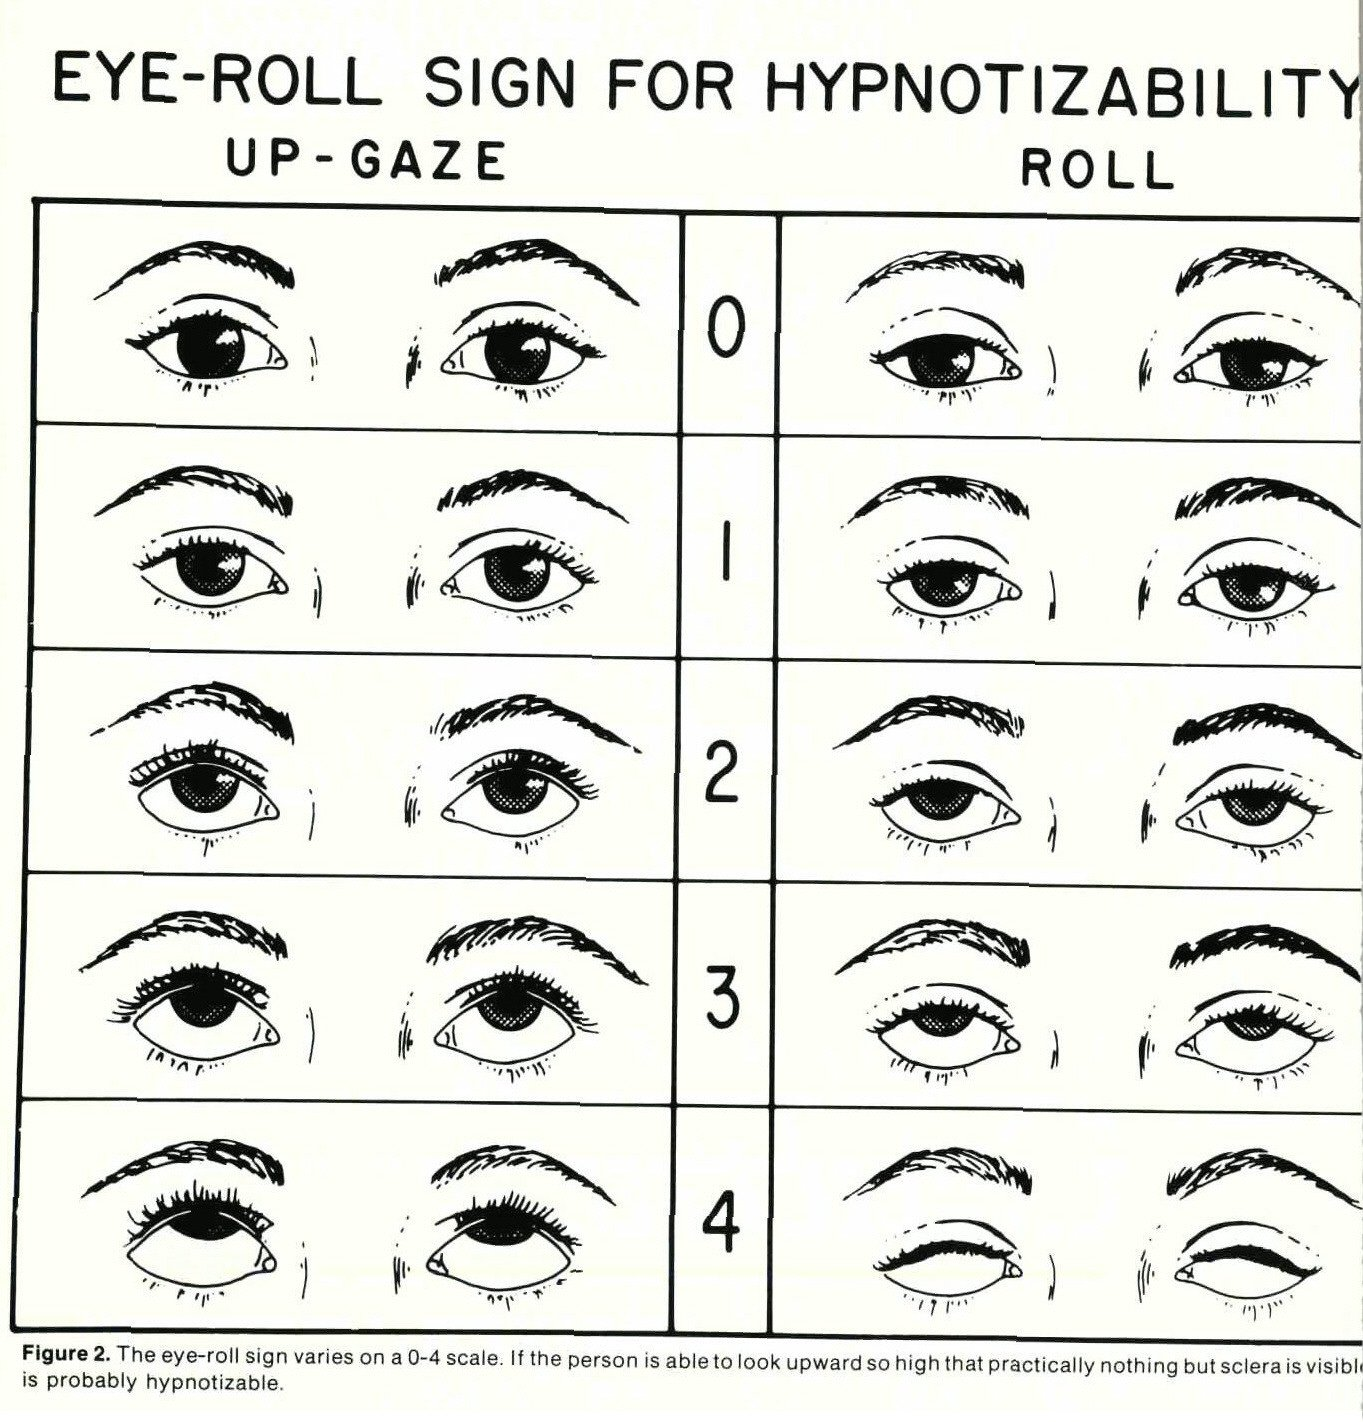 Spiegel Test Hypnosis Hypnosis Myth And Reality